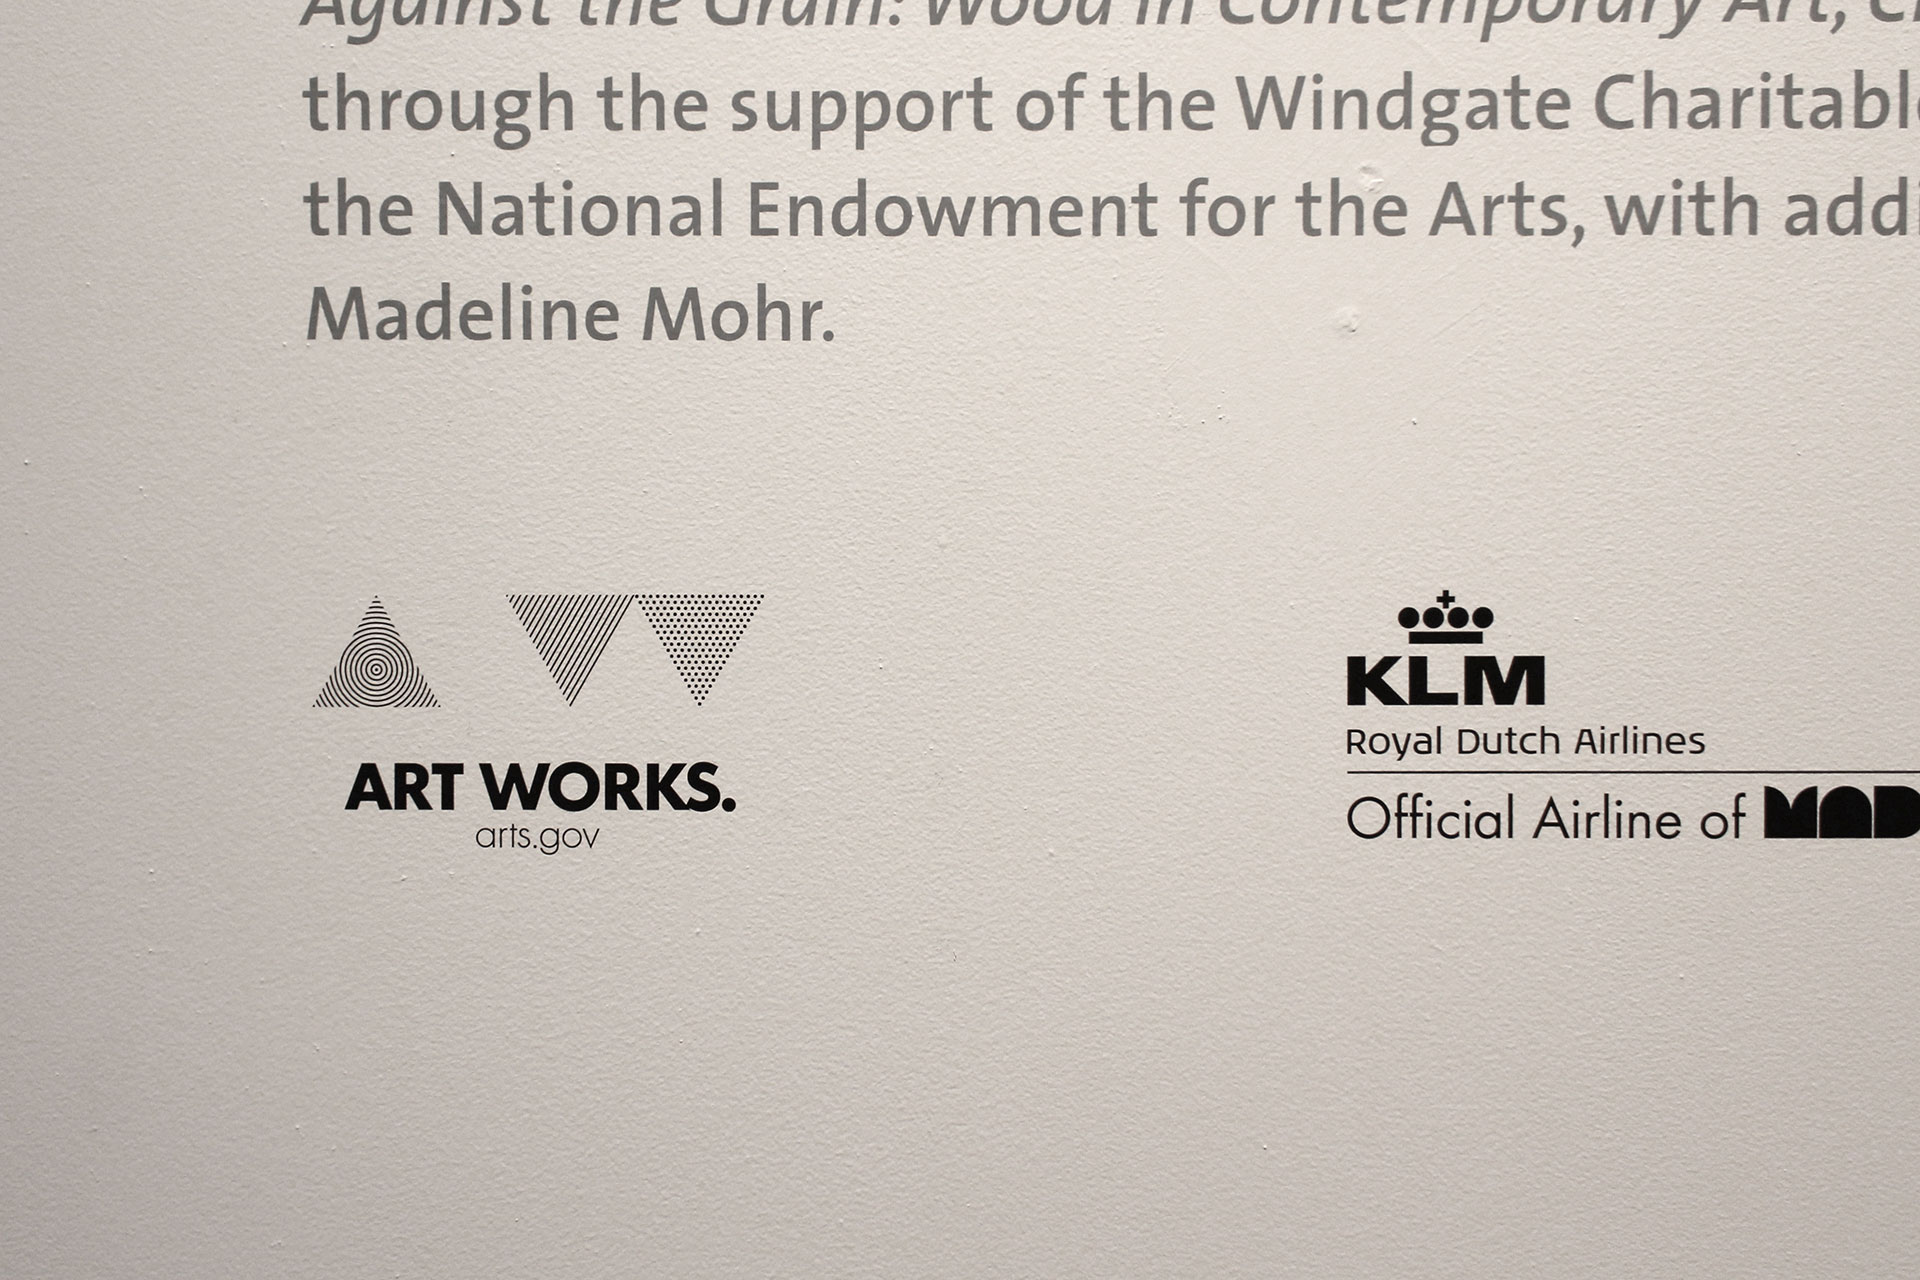 US National Endowment for the Arts